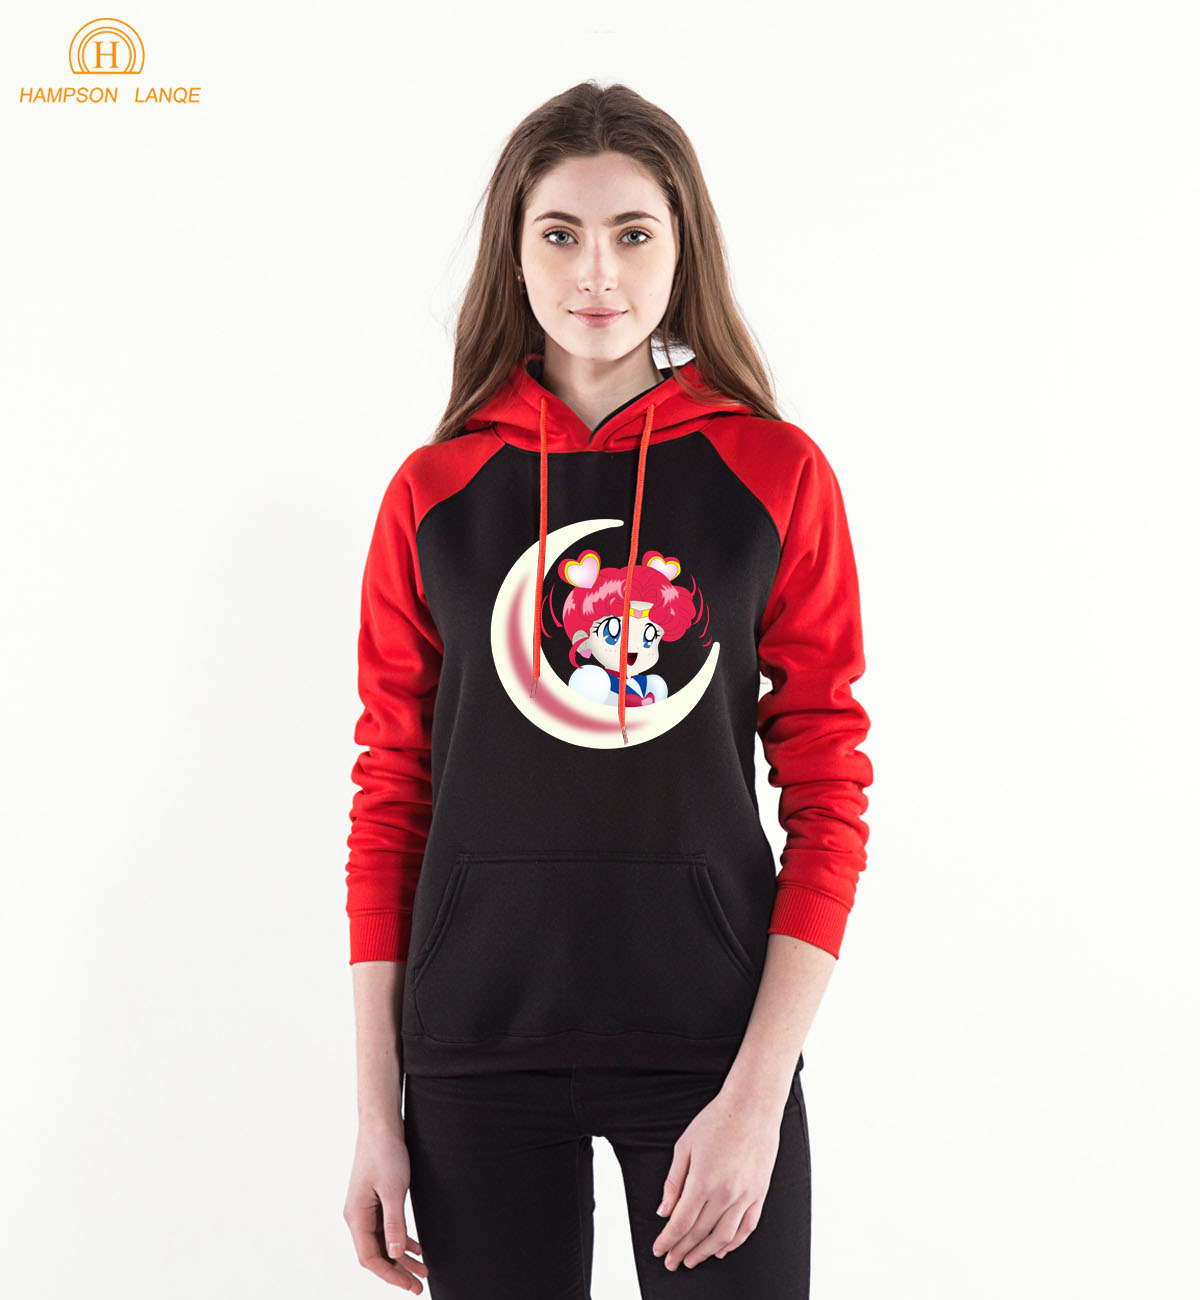 HAMPSON LANQE  Sailor Moon Spring Autumn Anime Hoodies 2019 Harajuku Sweatshirts Women's Raglan Hoodie Warm Fleece Tracksuit